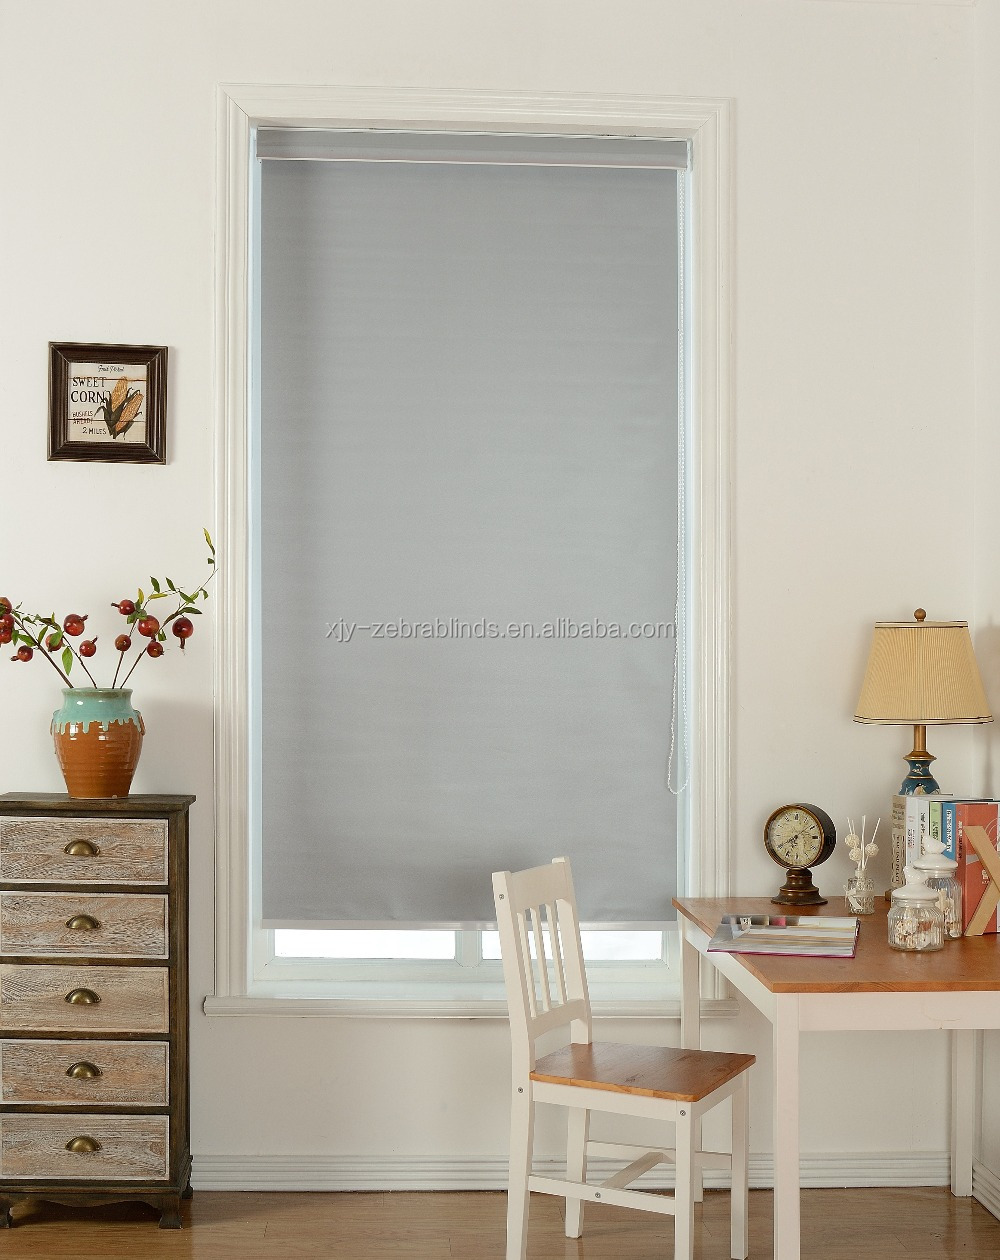 Basic plain design solid color blackout roller blind fabric and readymade blinds